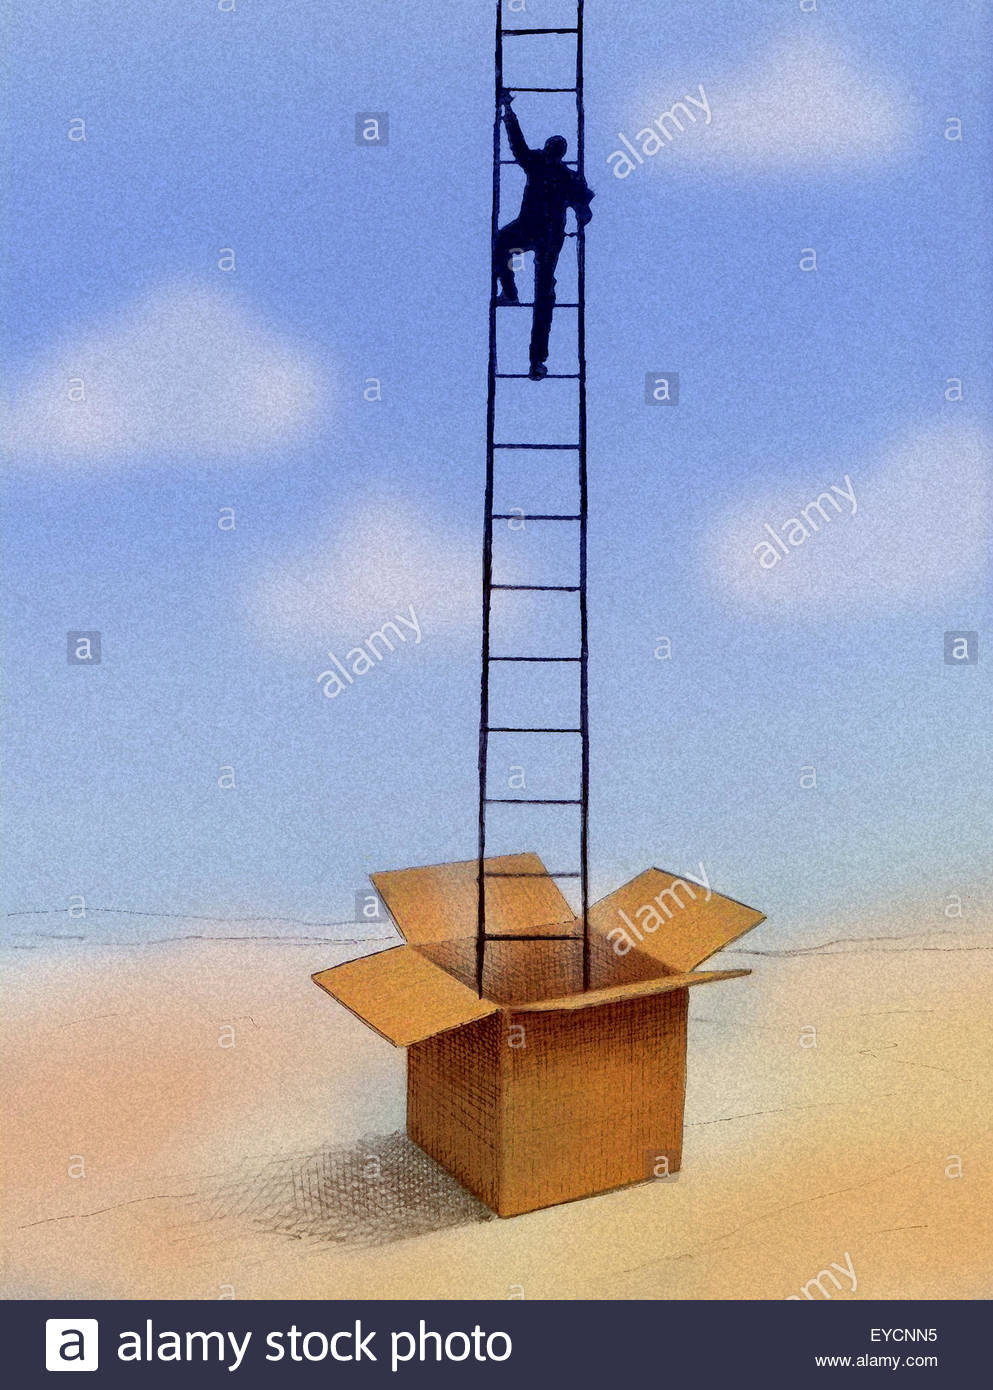 Businessman climbing ladder out of box - Stock Image